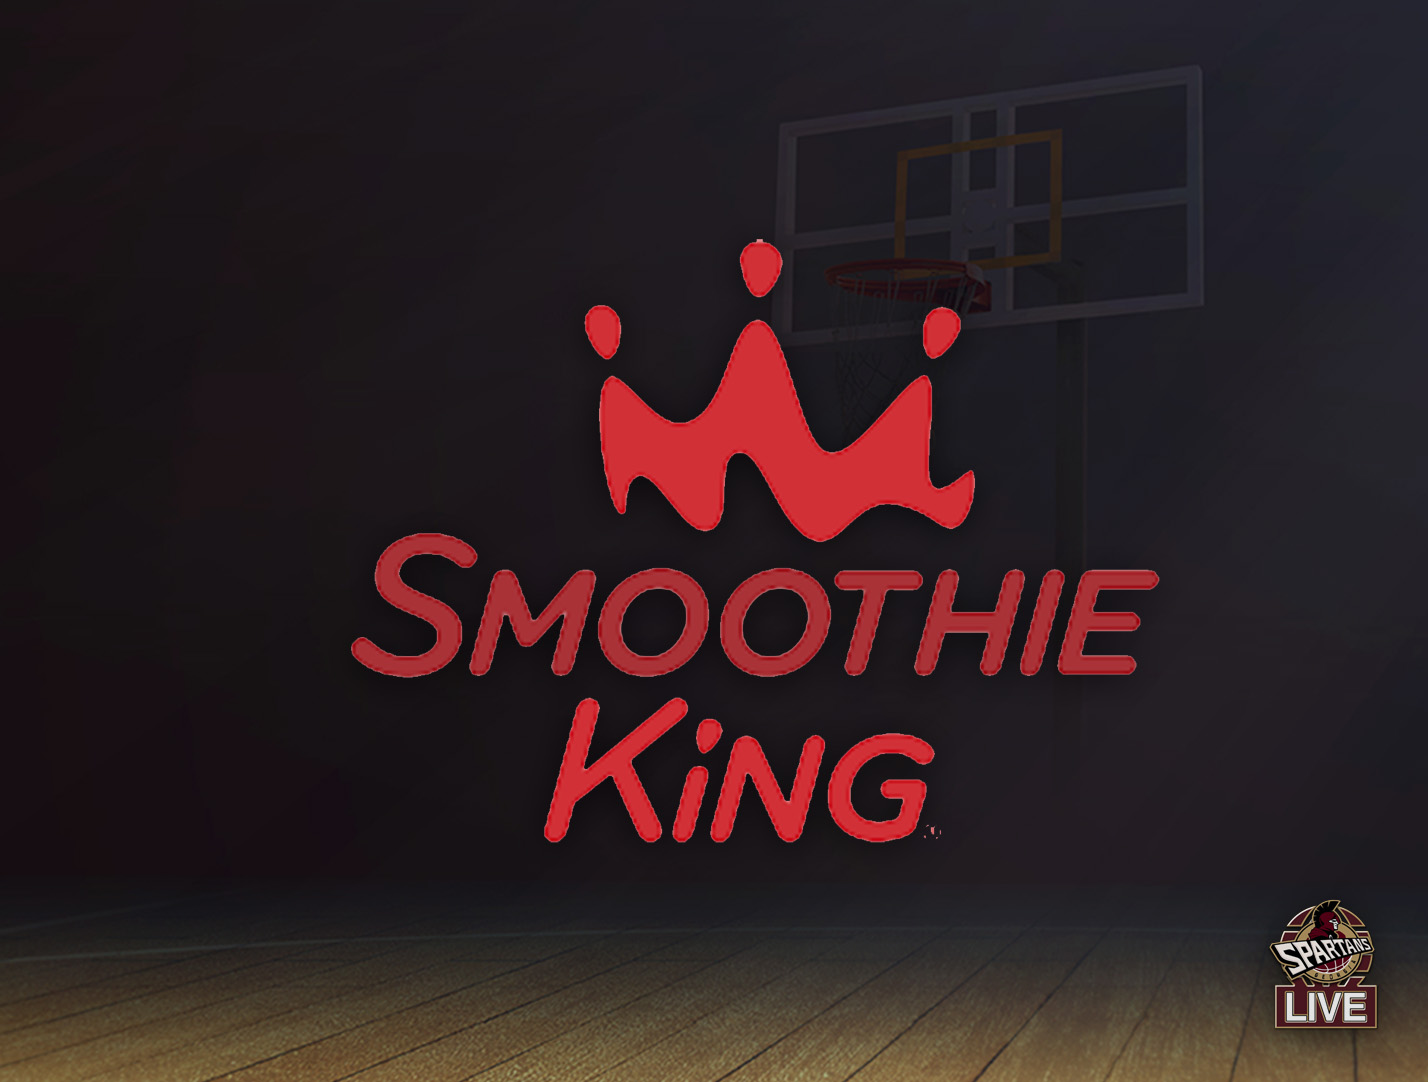 Smoothie King Georgia Spartans Team Sponsor